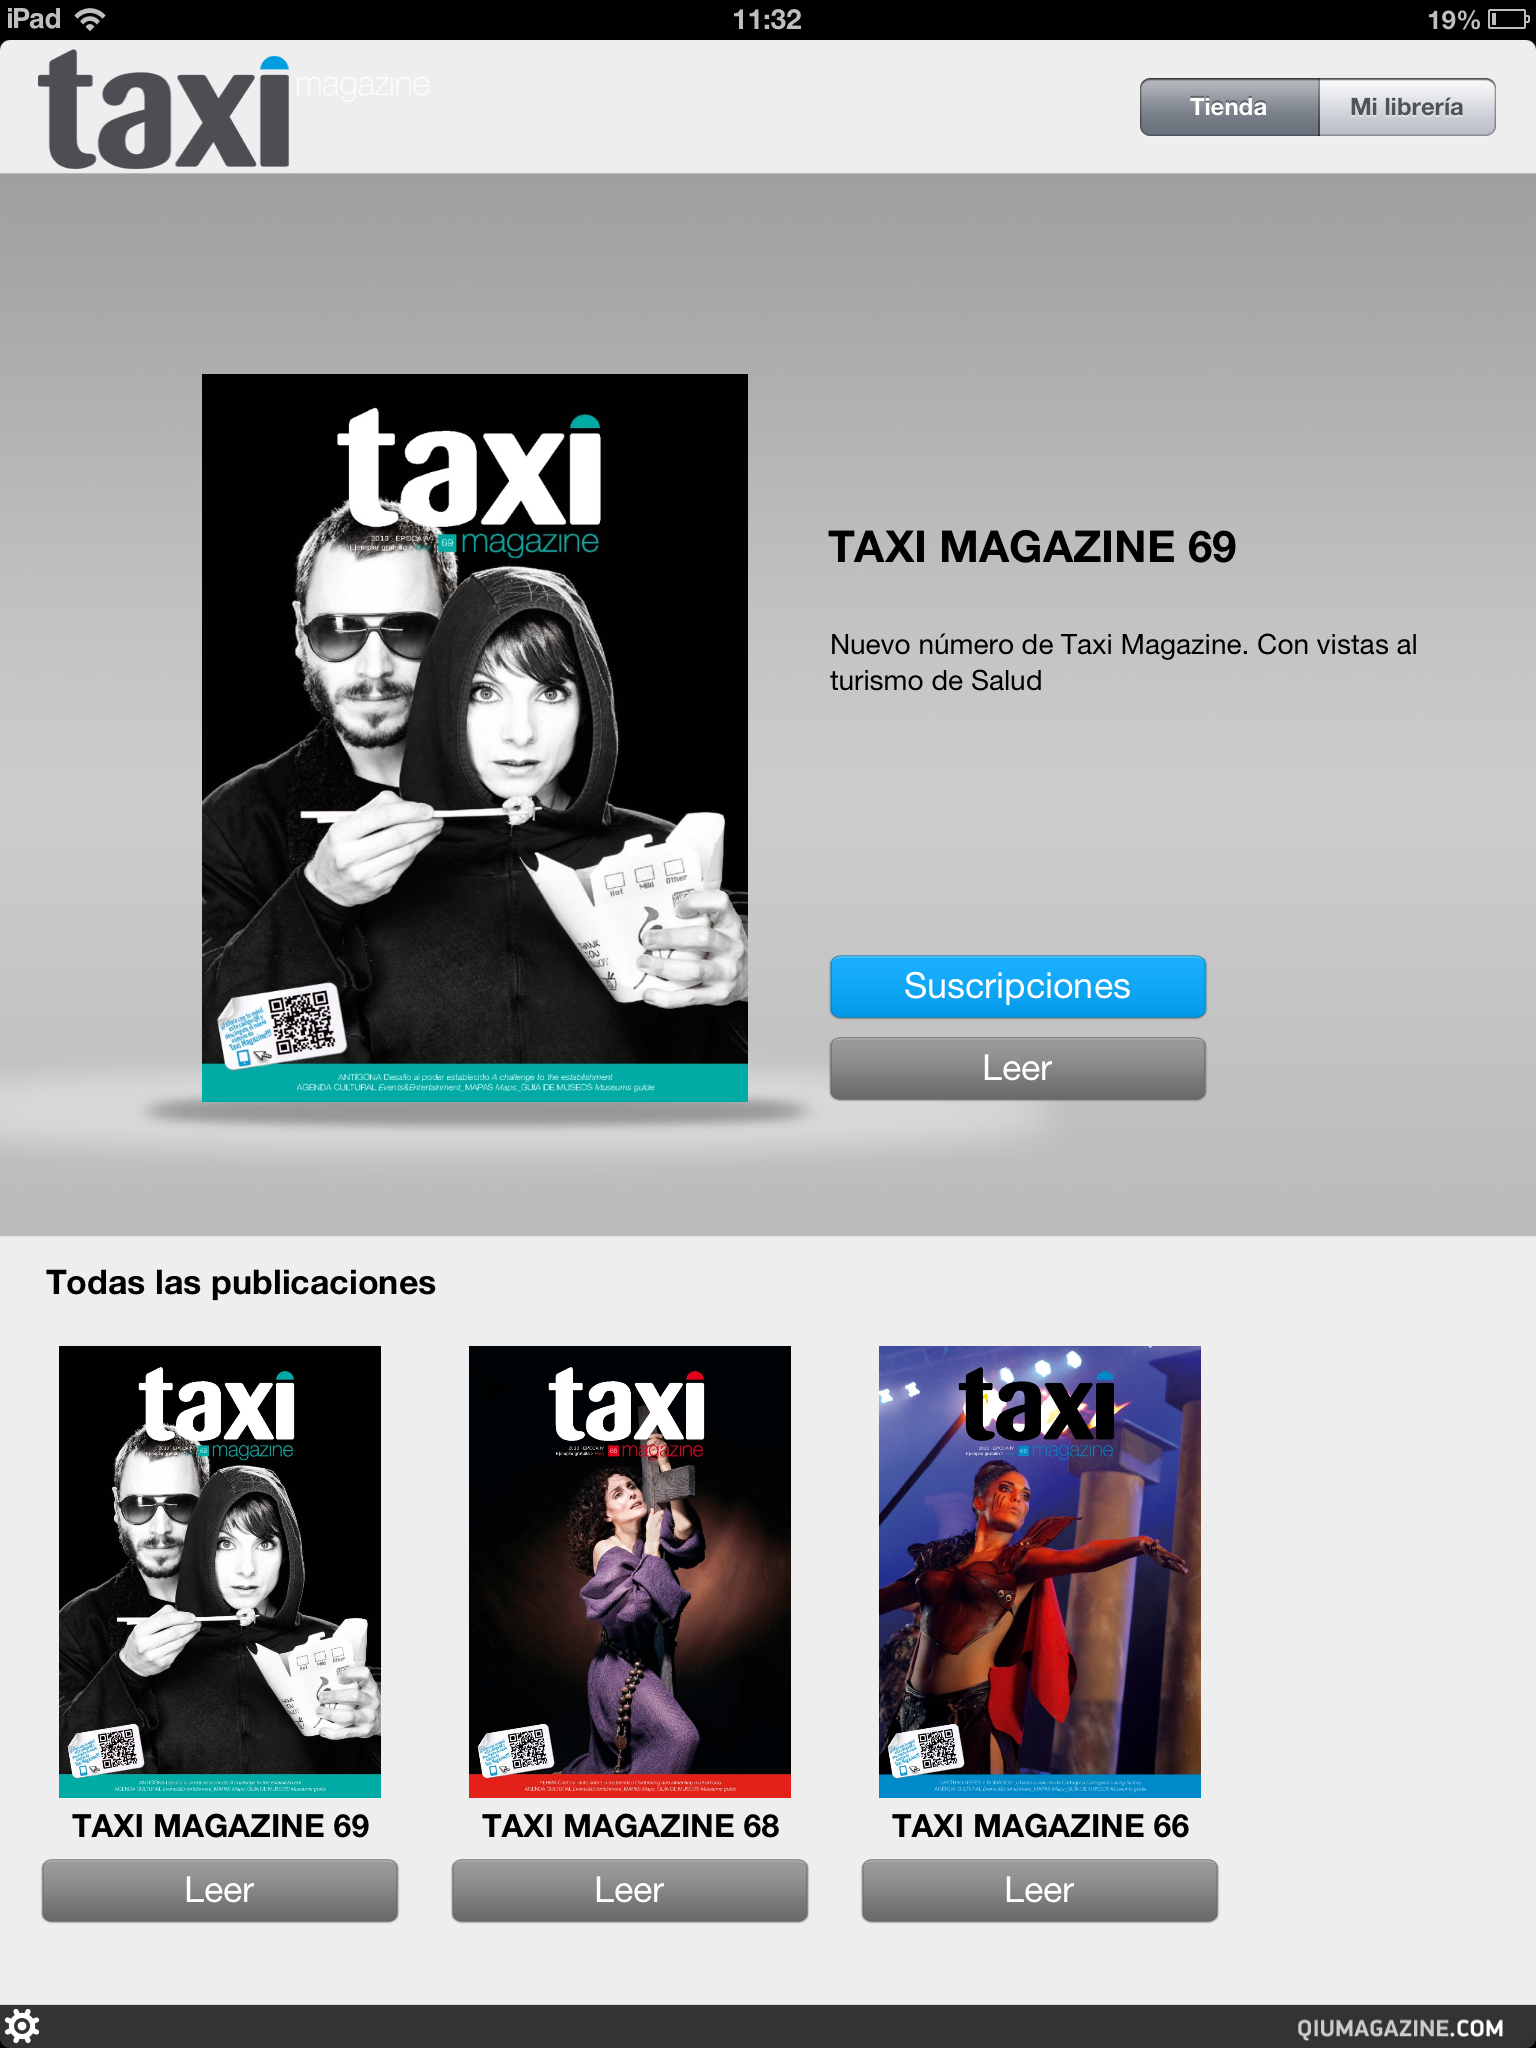 Revista digital para iPad Taxi Magazine